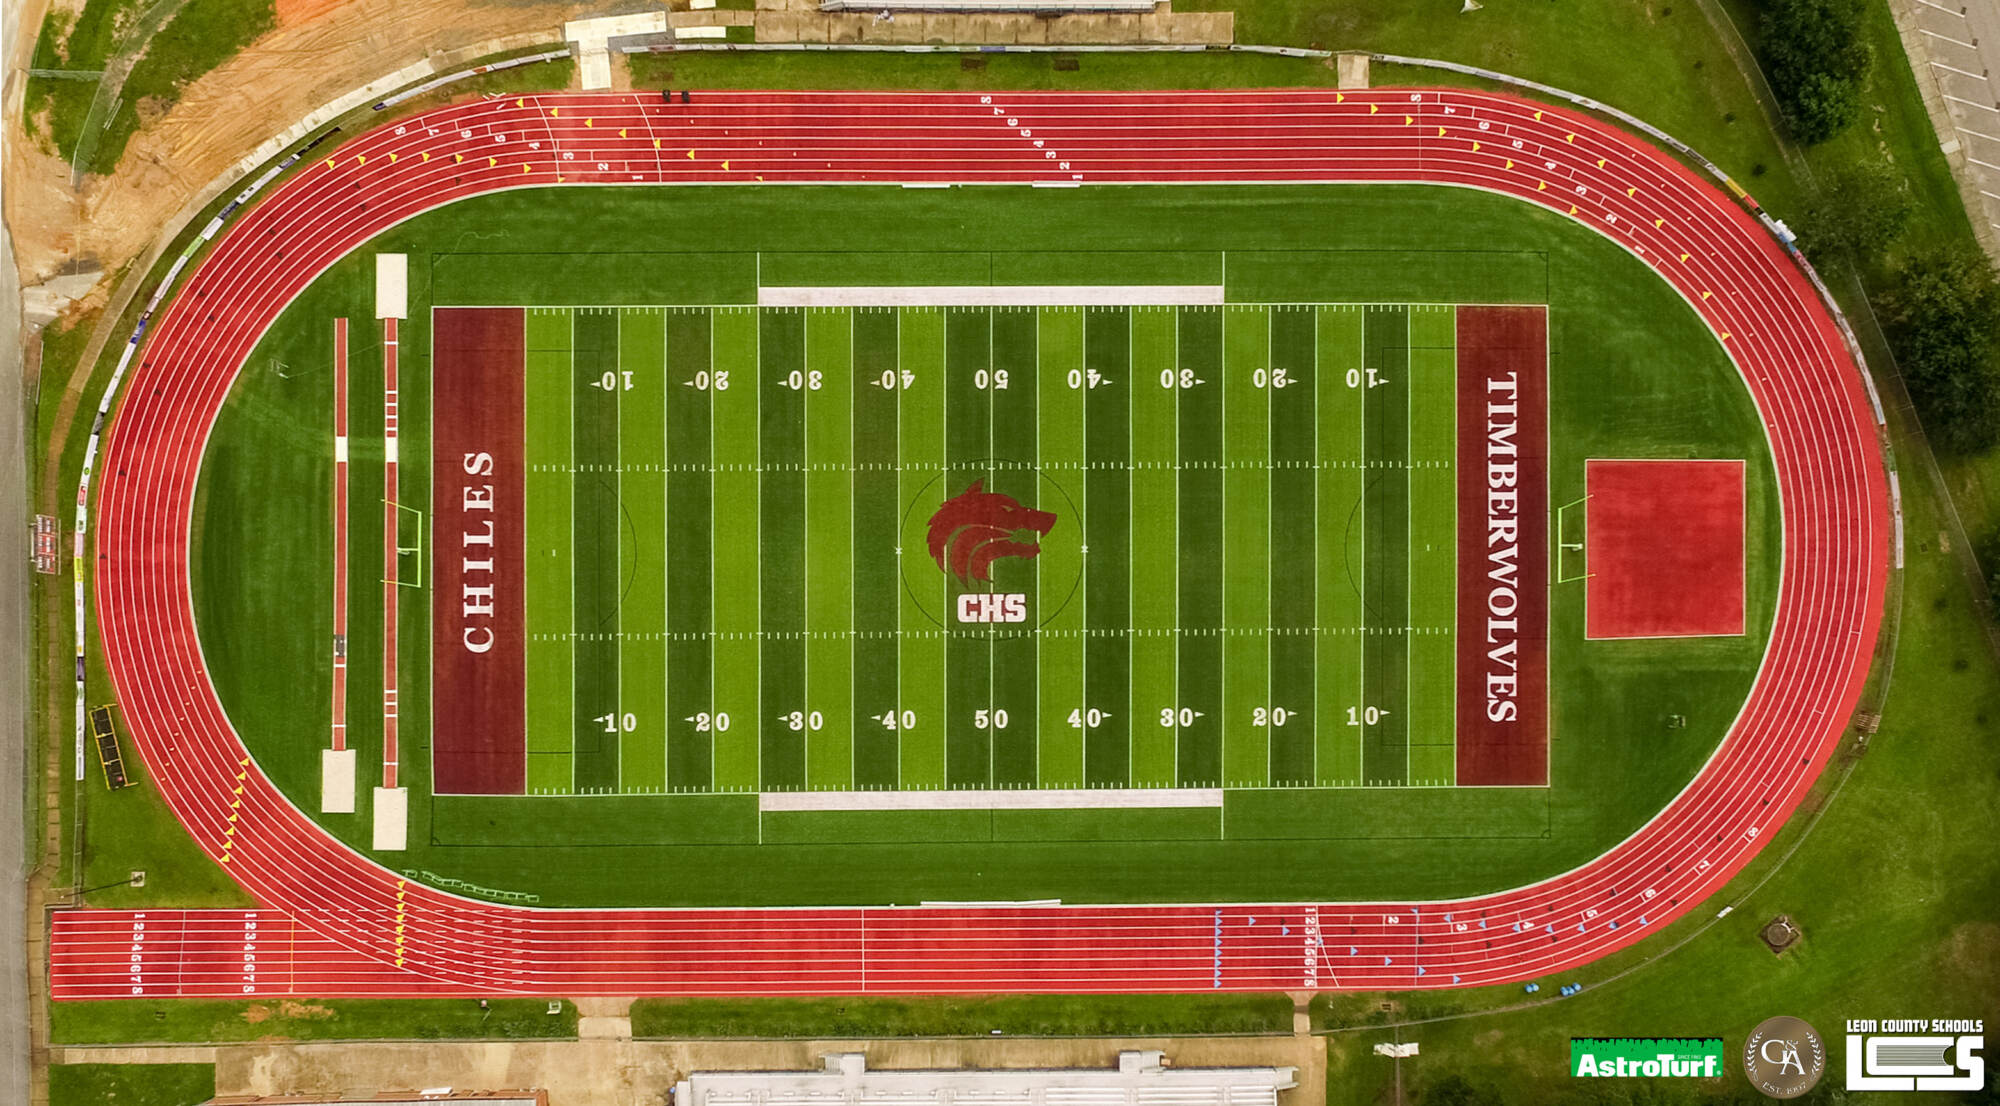 New AstroTurf at Chiles High School